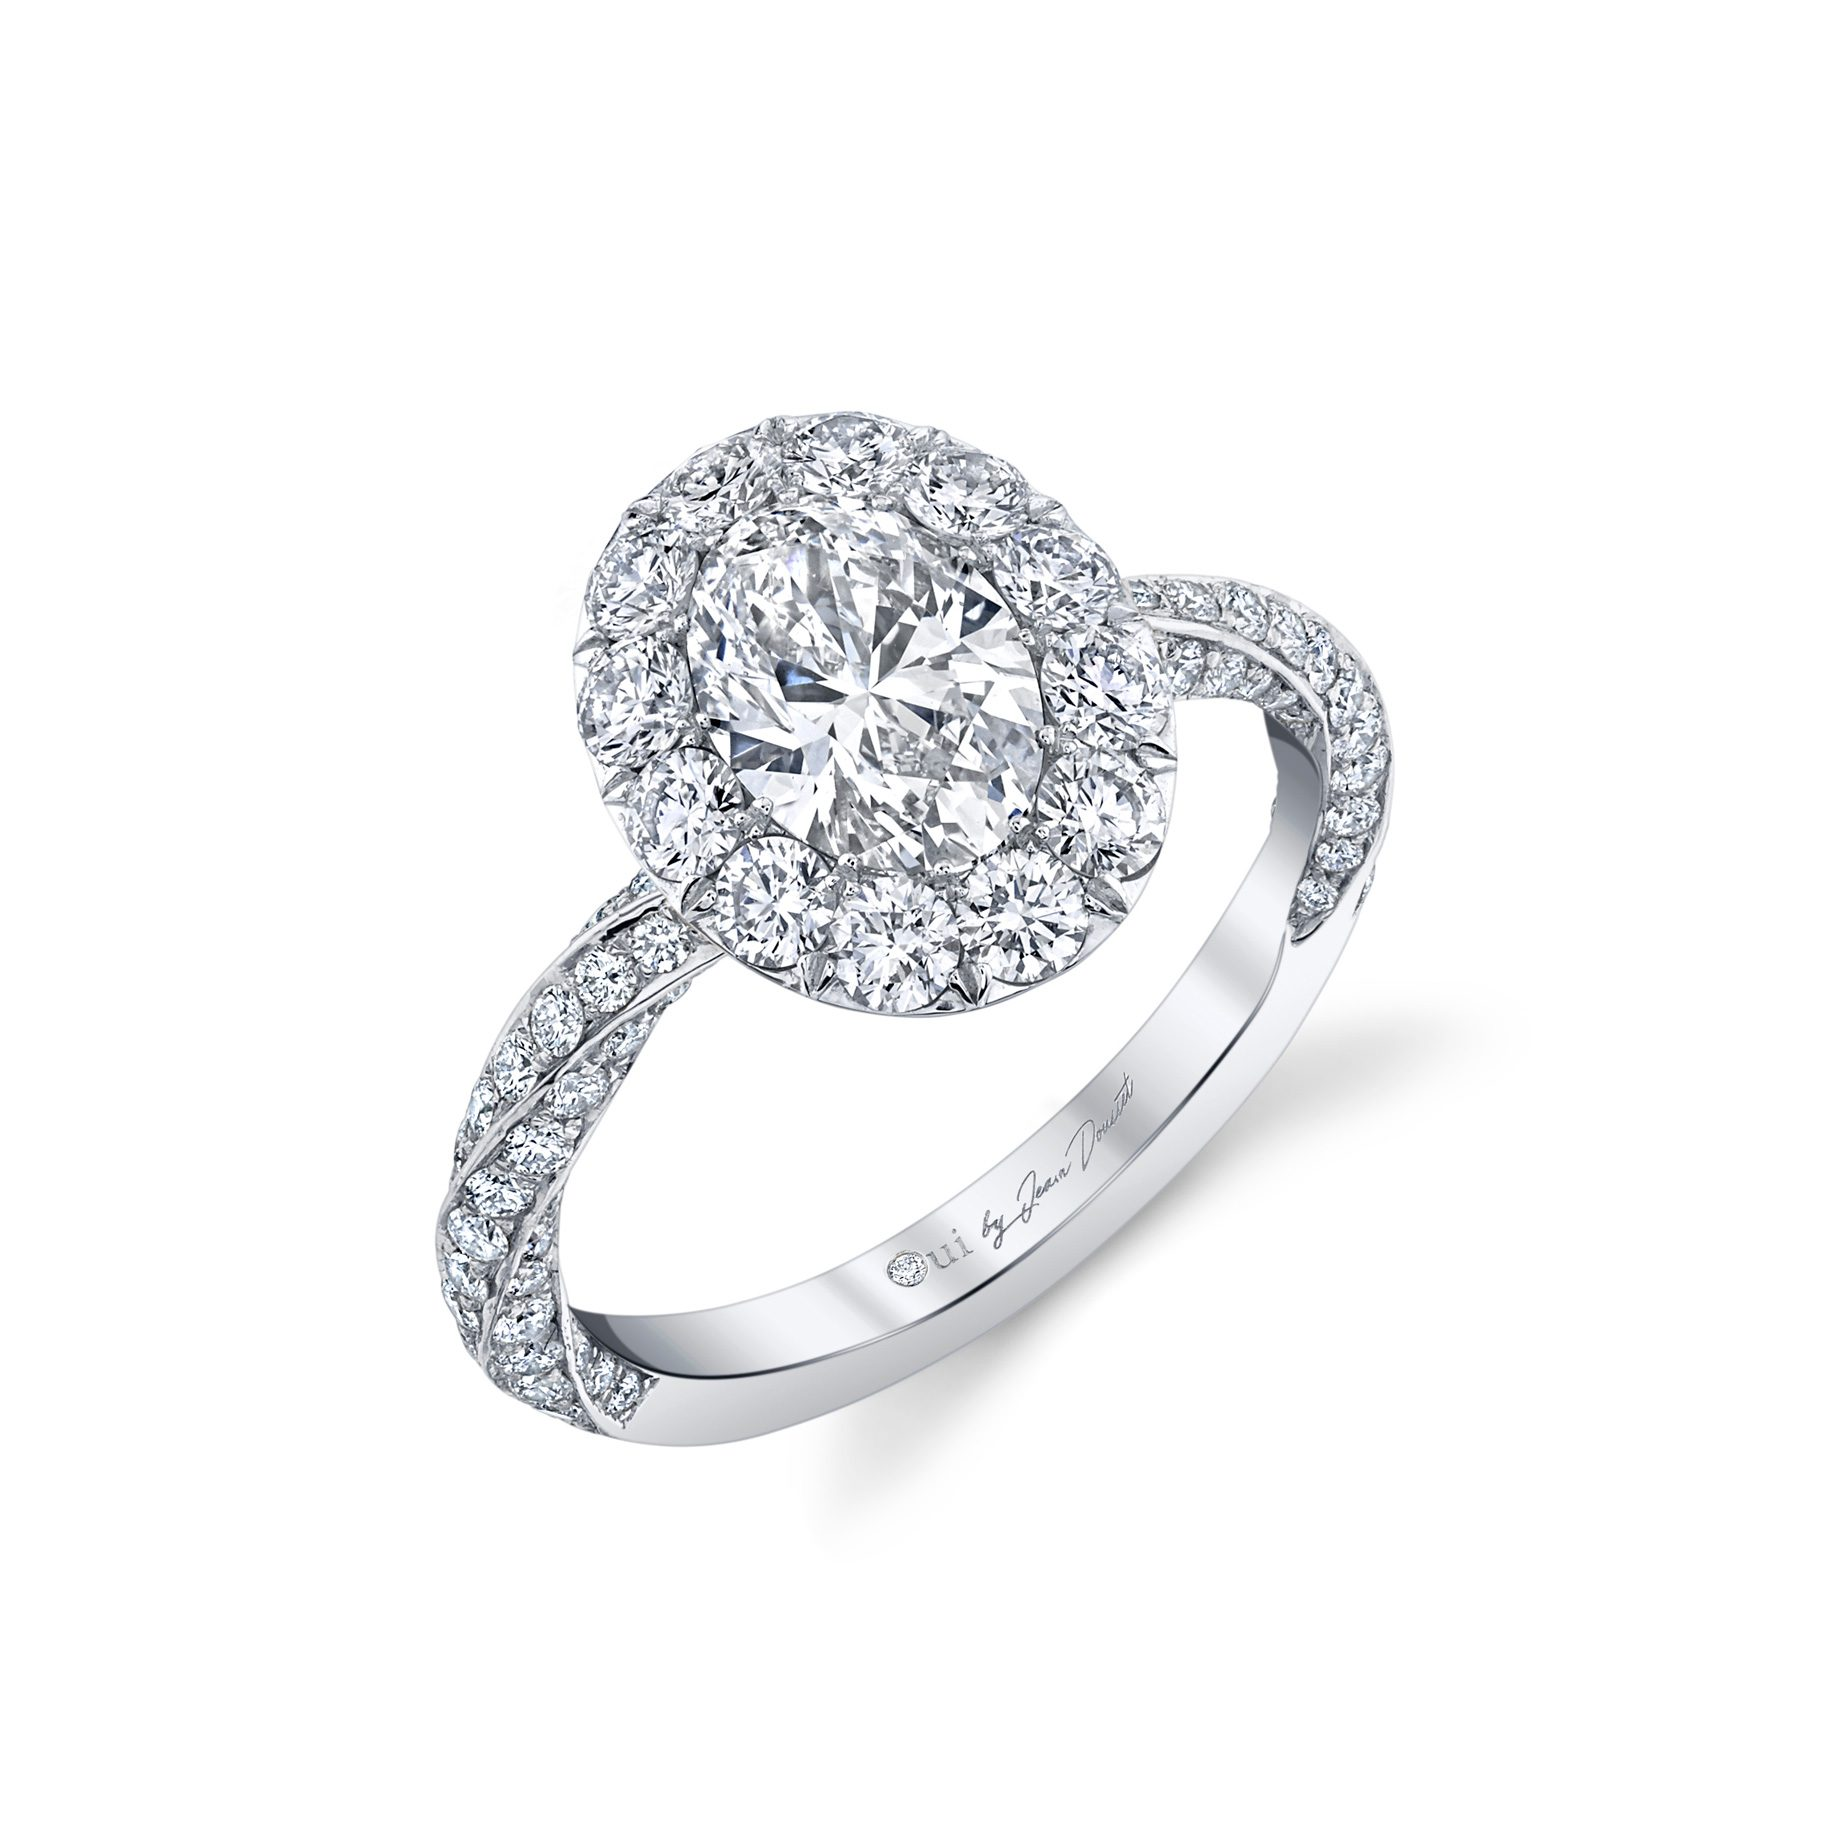 Camille Floating Oval Seamless Solitaire® Engagement Ring with diamond pavé in 18k White Gold Profile View by Oui by Jean Dousset